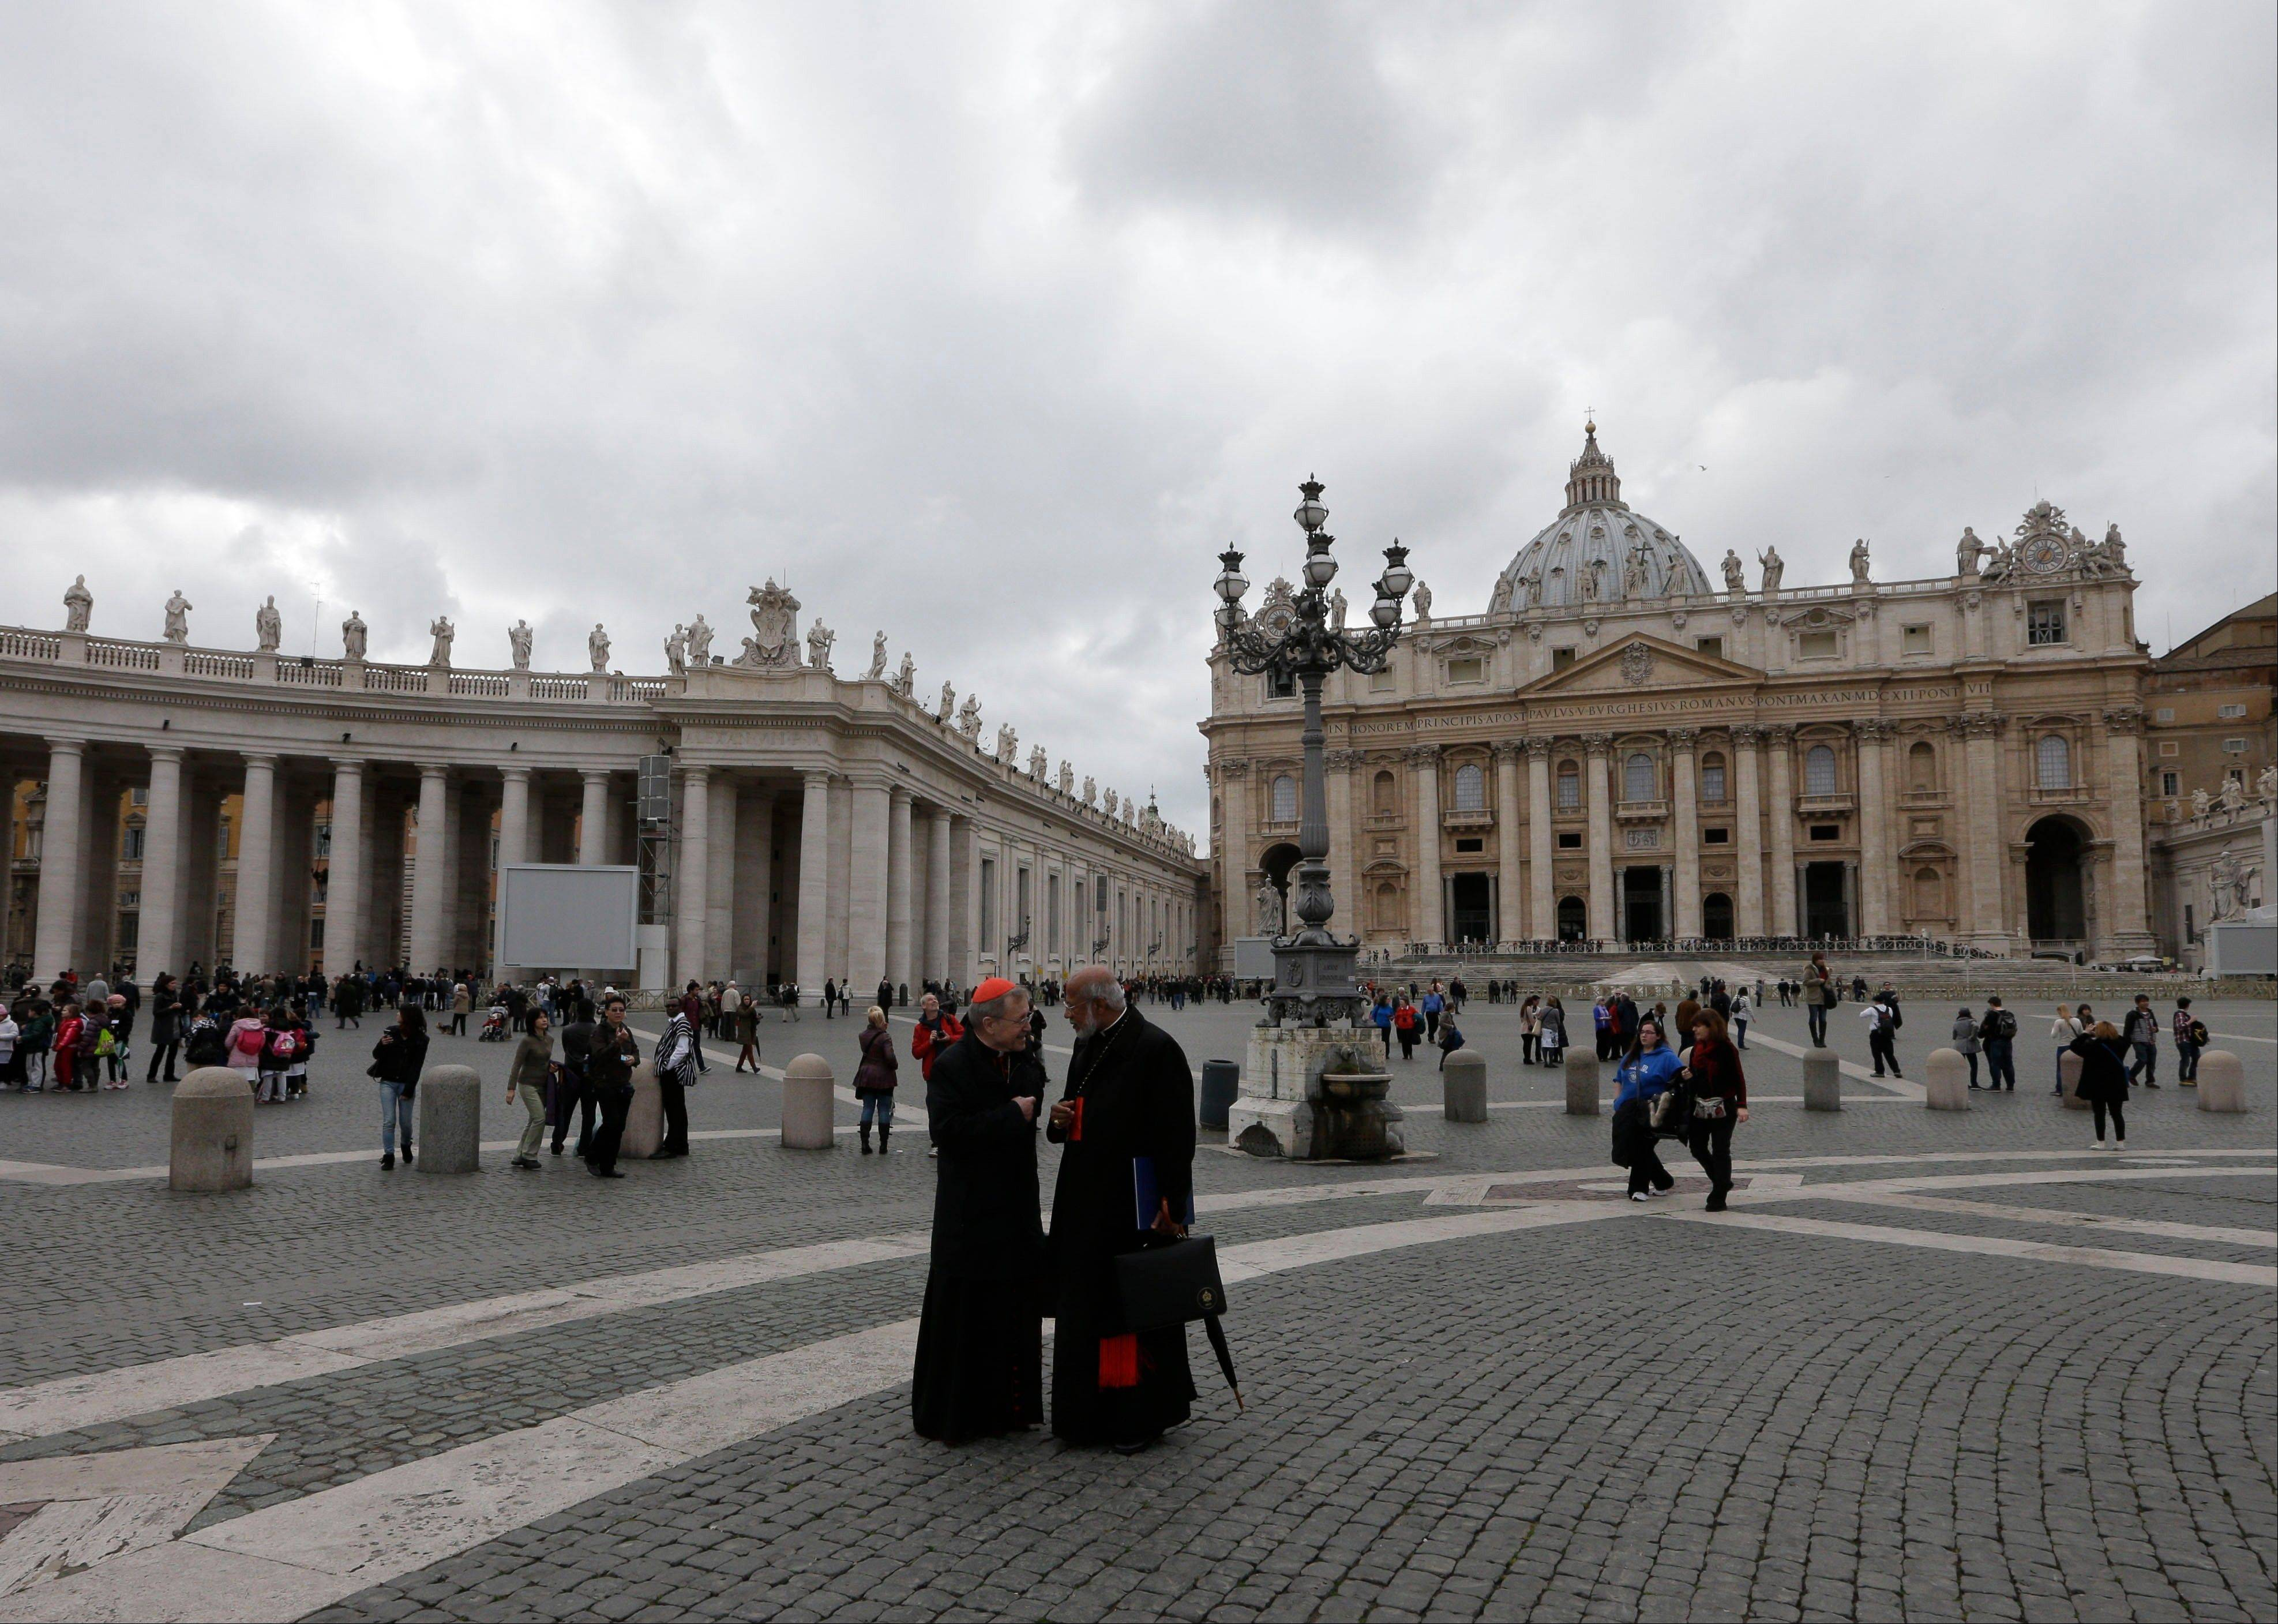 Cardinals get finance brief but no conclave date